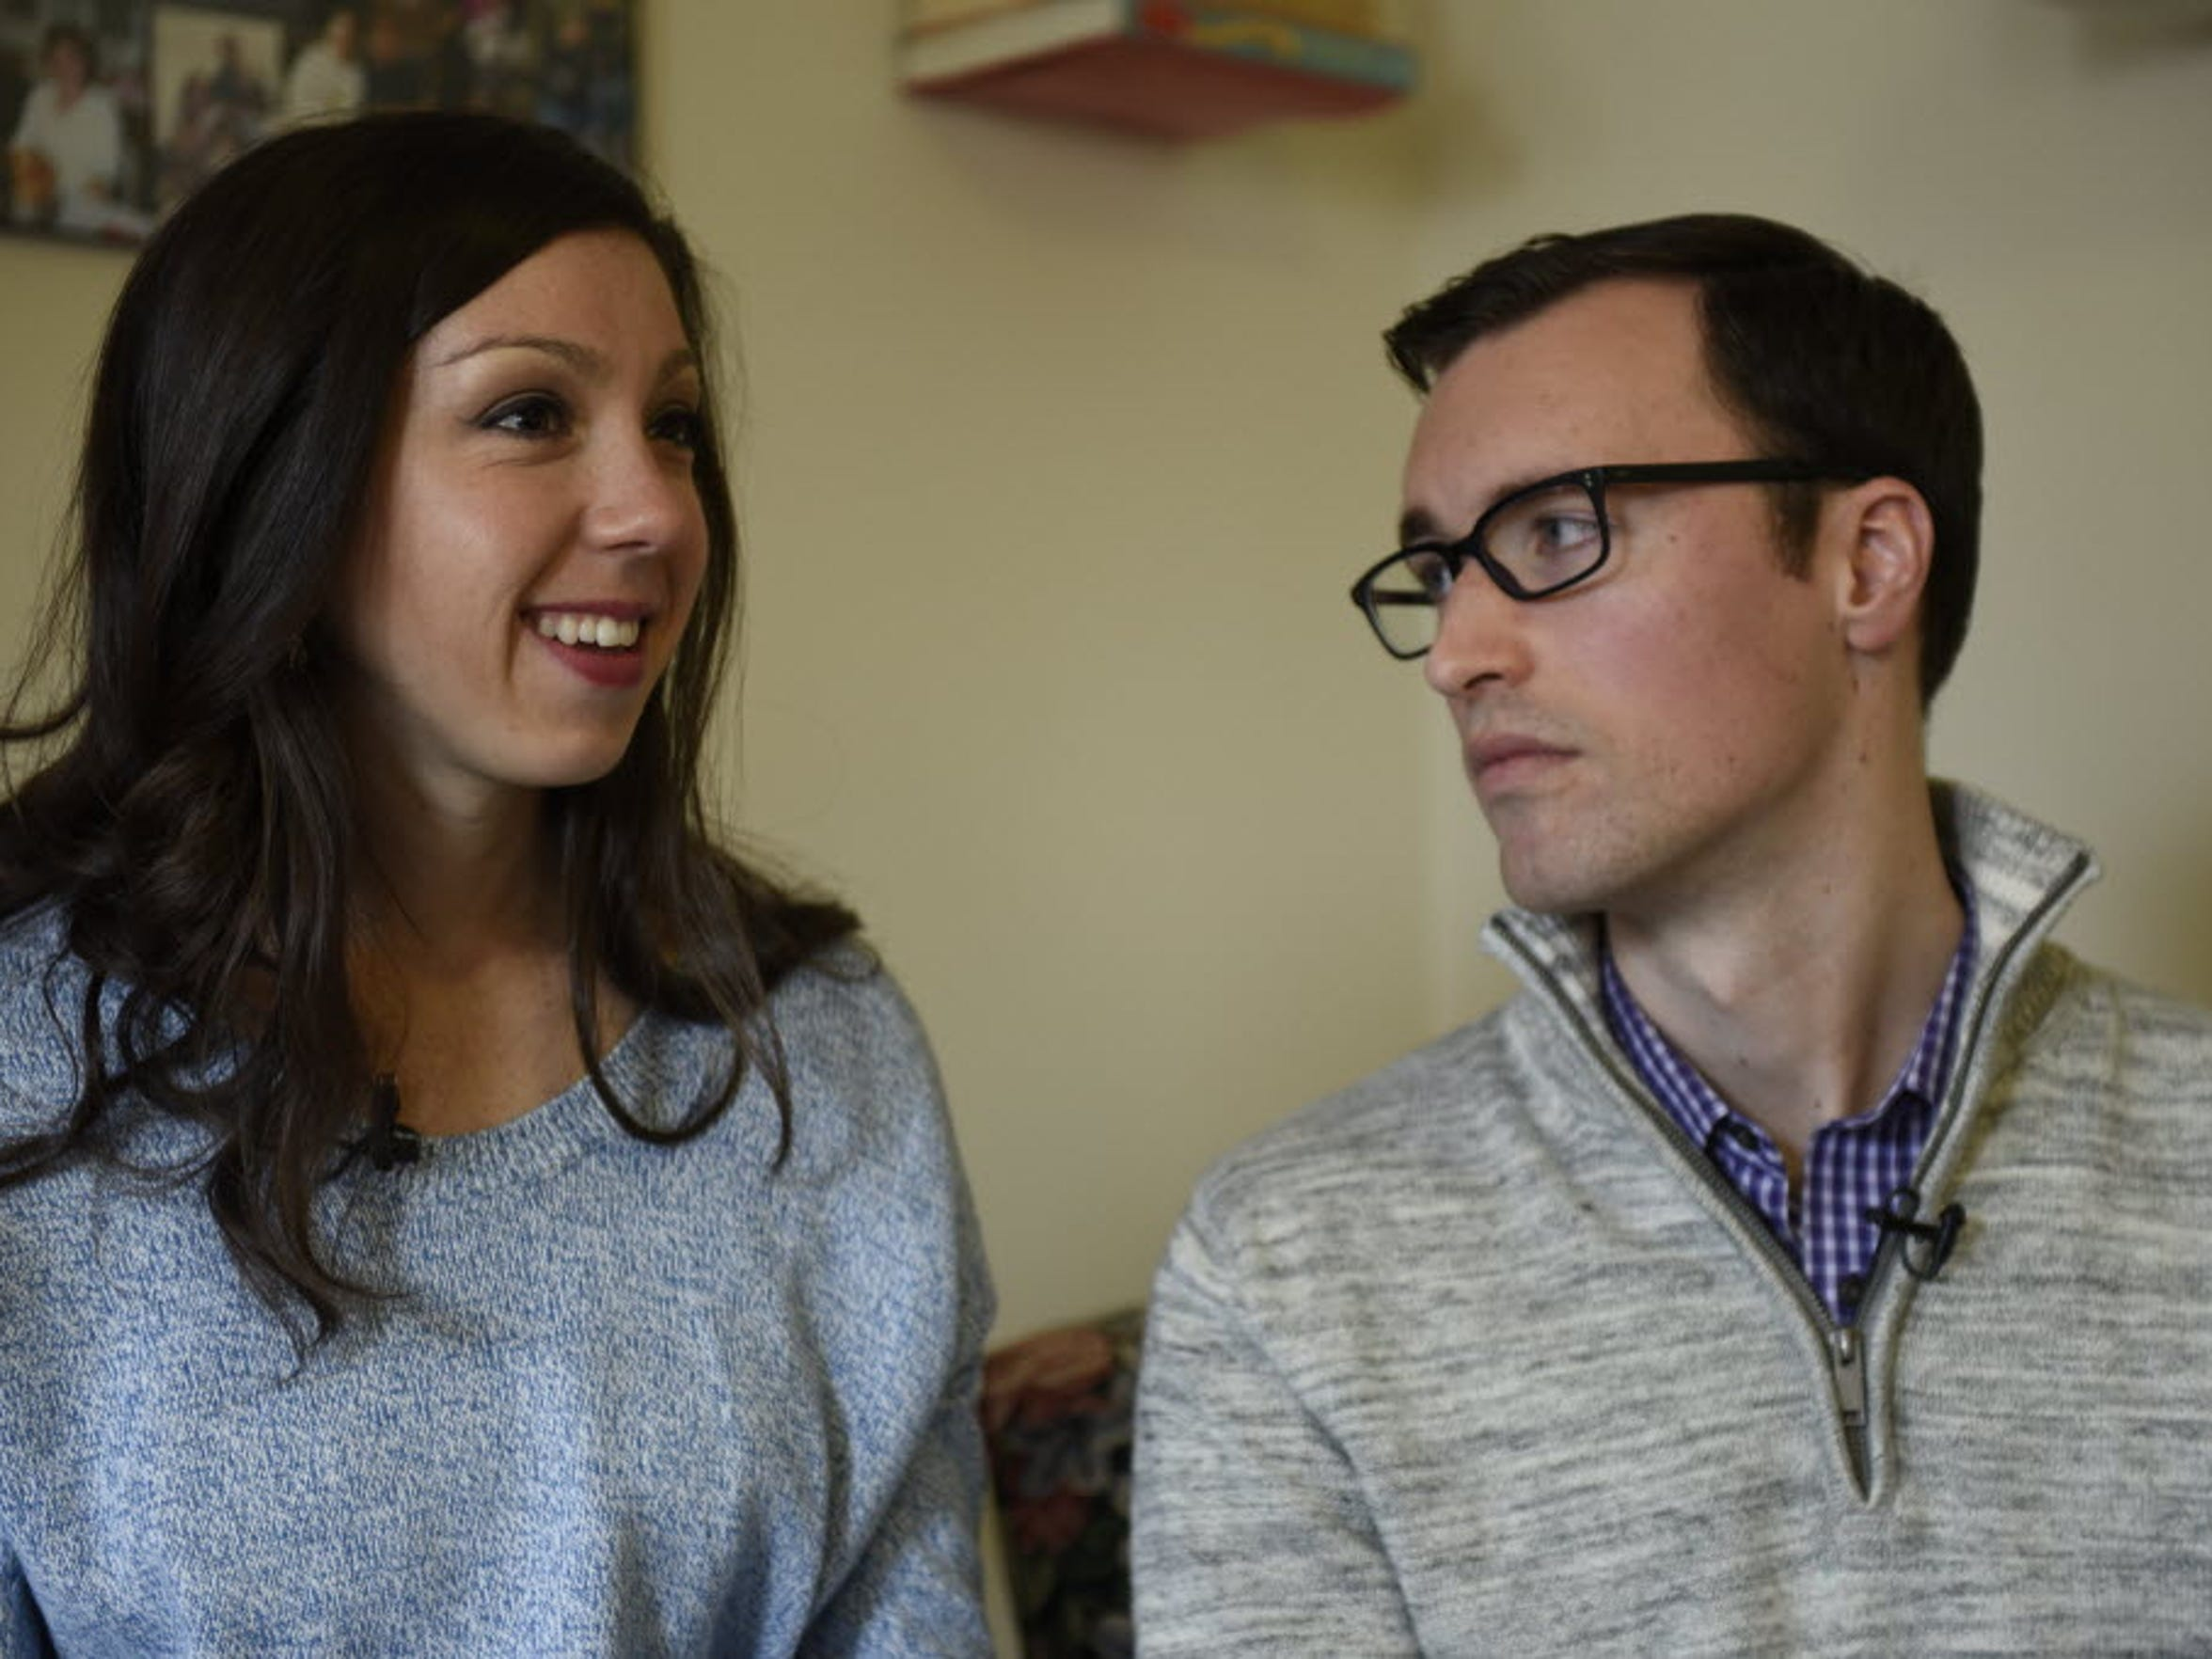 Elizabeth and David Glidden, both 26, talk about the homebuying process in Washington, D.C.